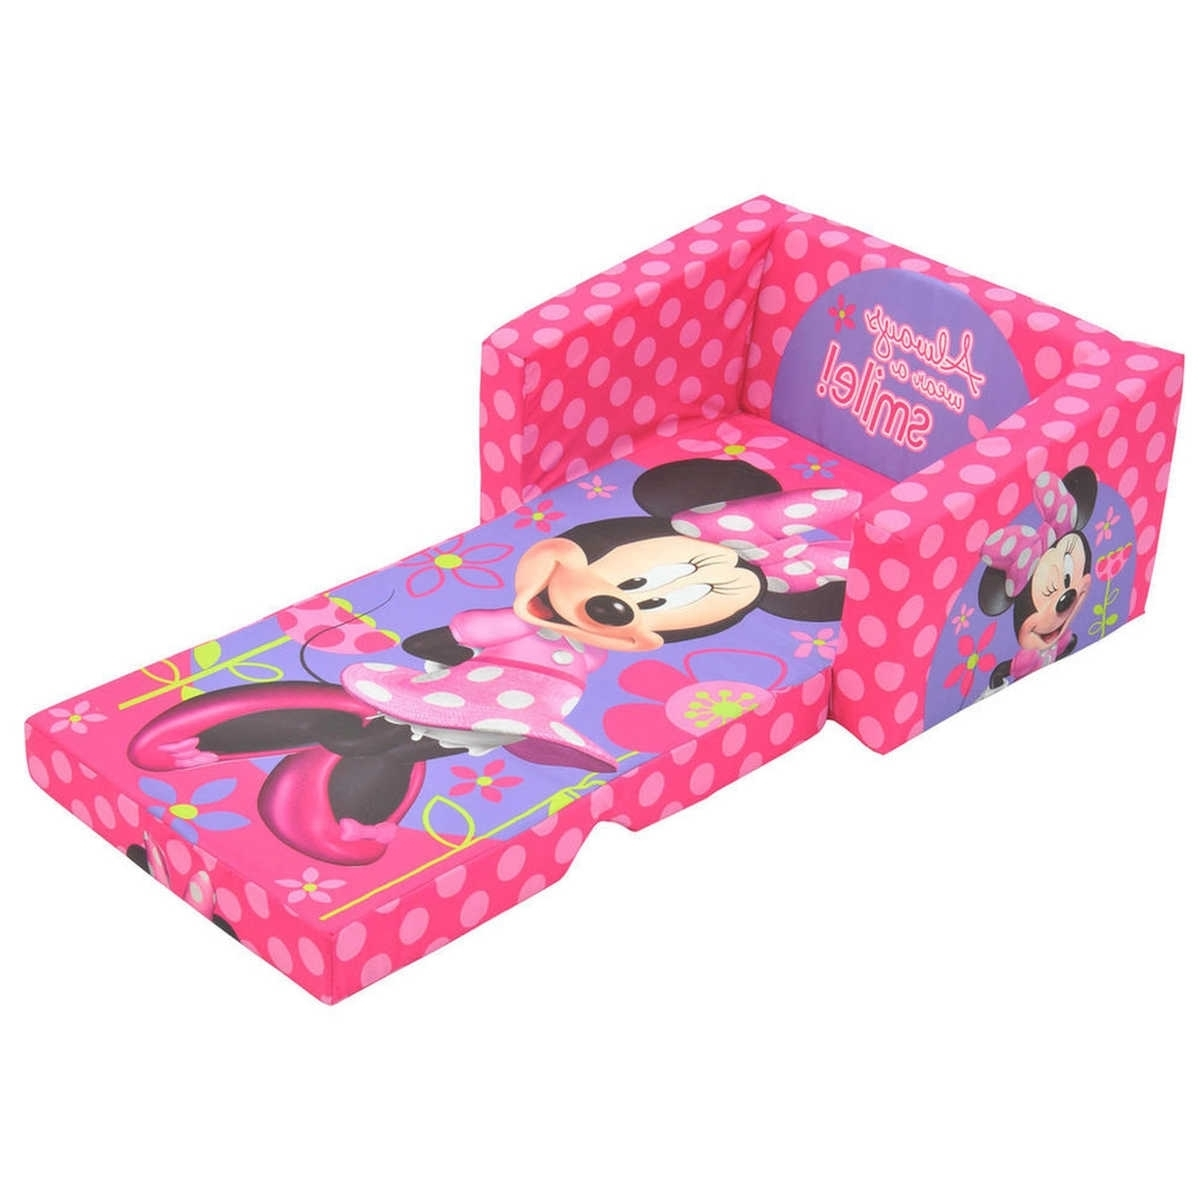 Flip Out Sofa For Kids Throughout Most Popular Minnie Mouse Flip Out Sofa Bed • Sofa Bed (View 6 of 15)